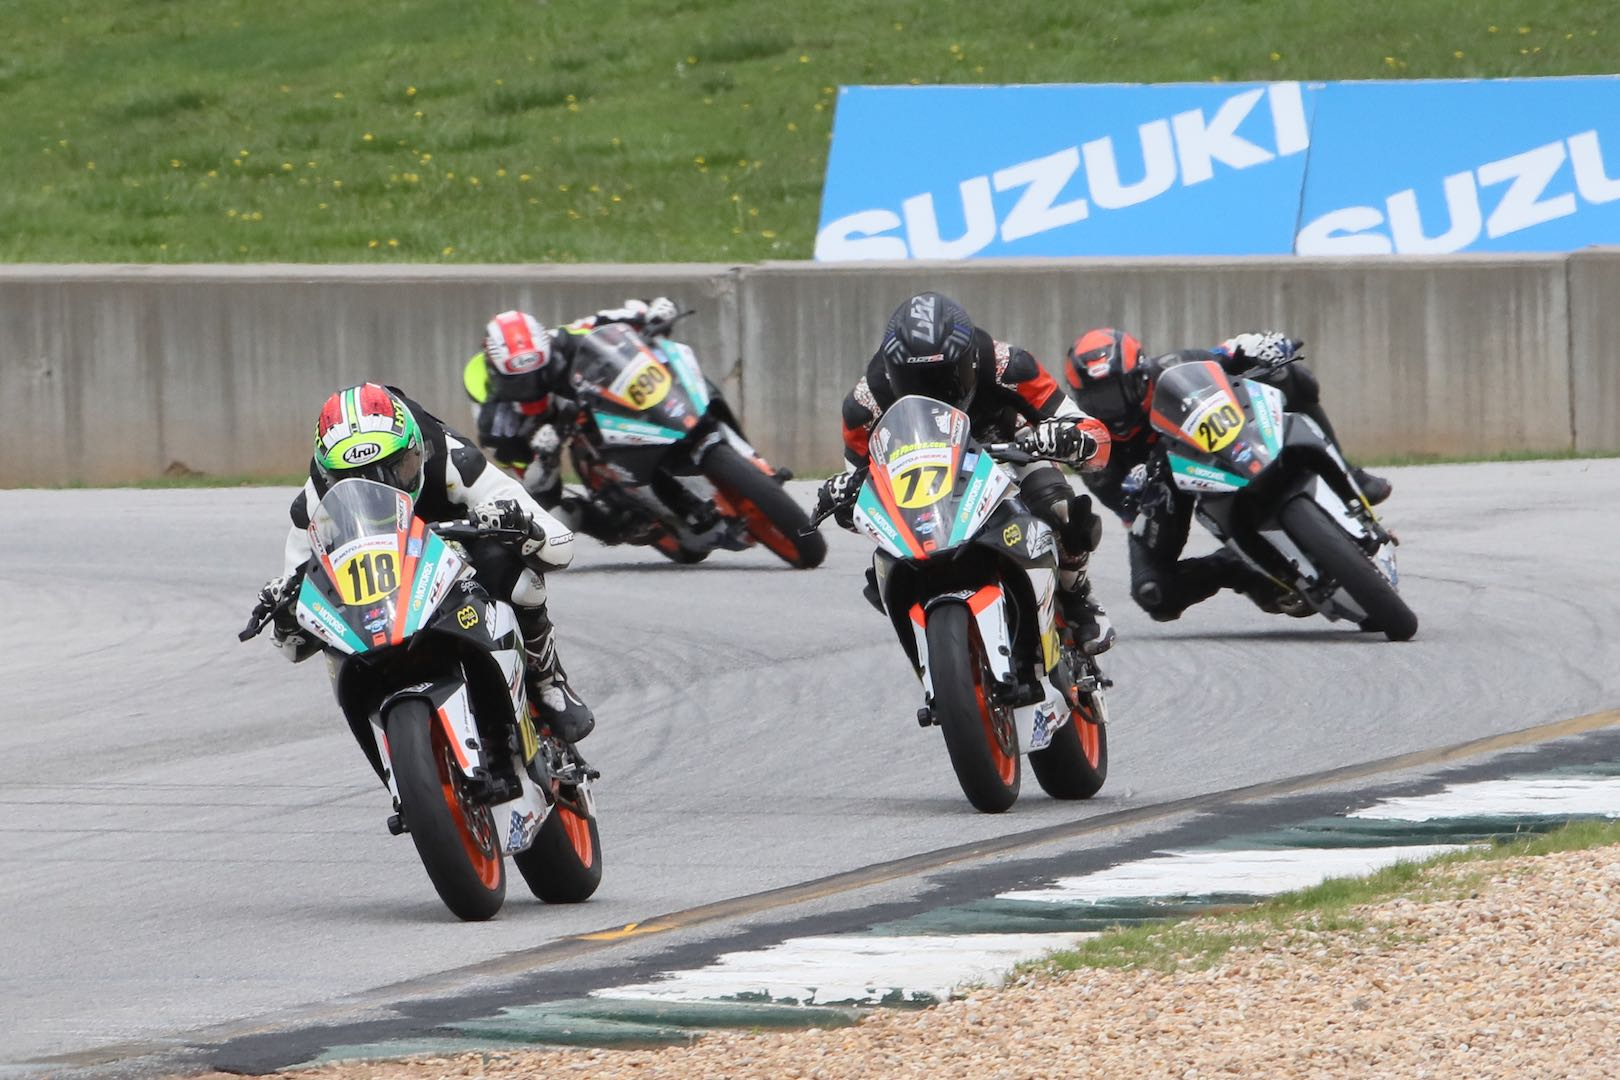 2017 Road Atlanta MotoAmerica Results: Benjamin Smith leads RC Cup